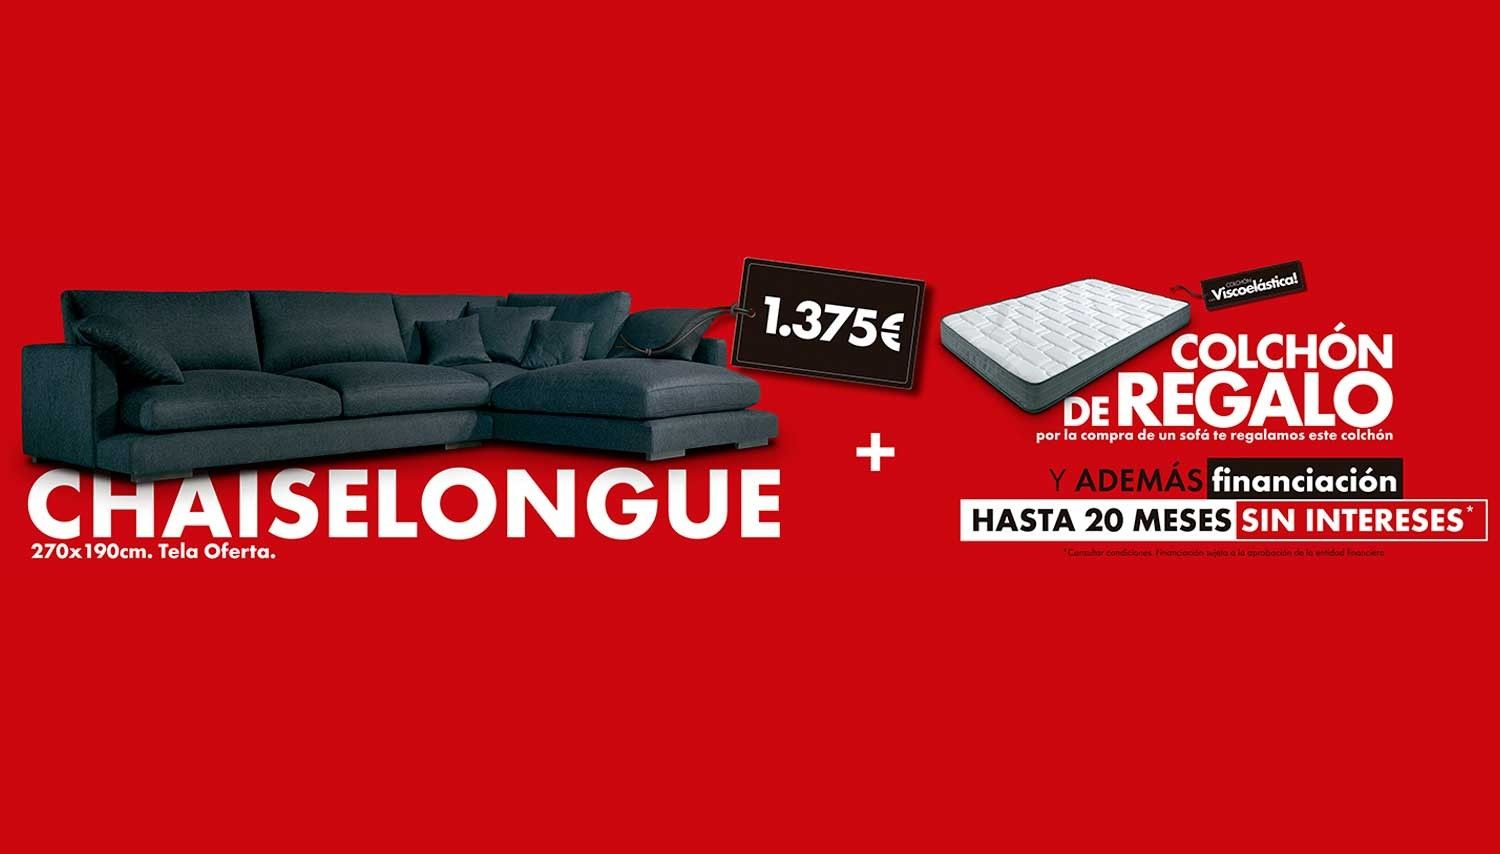 Pack chaiselongue + colchón de regalo